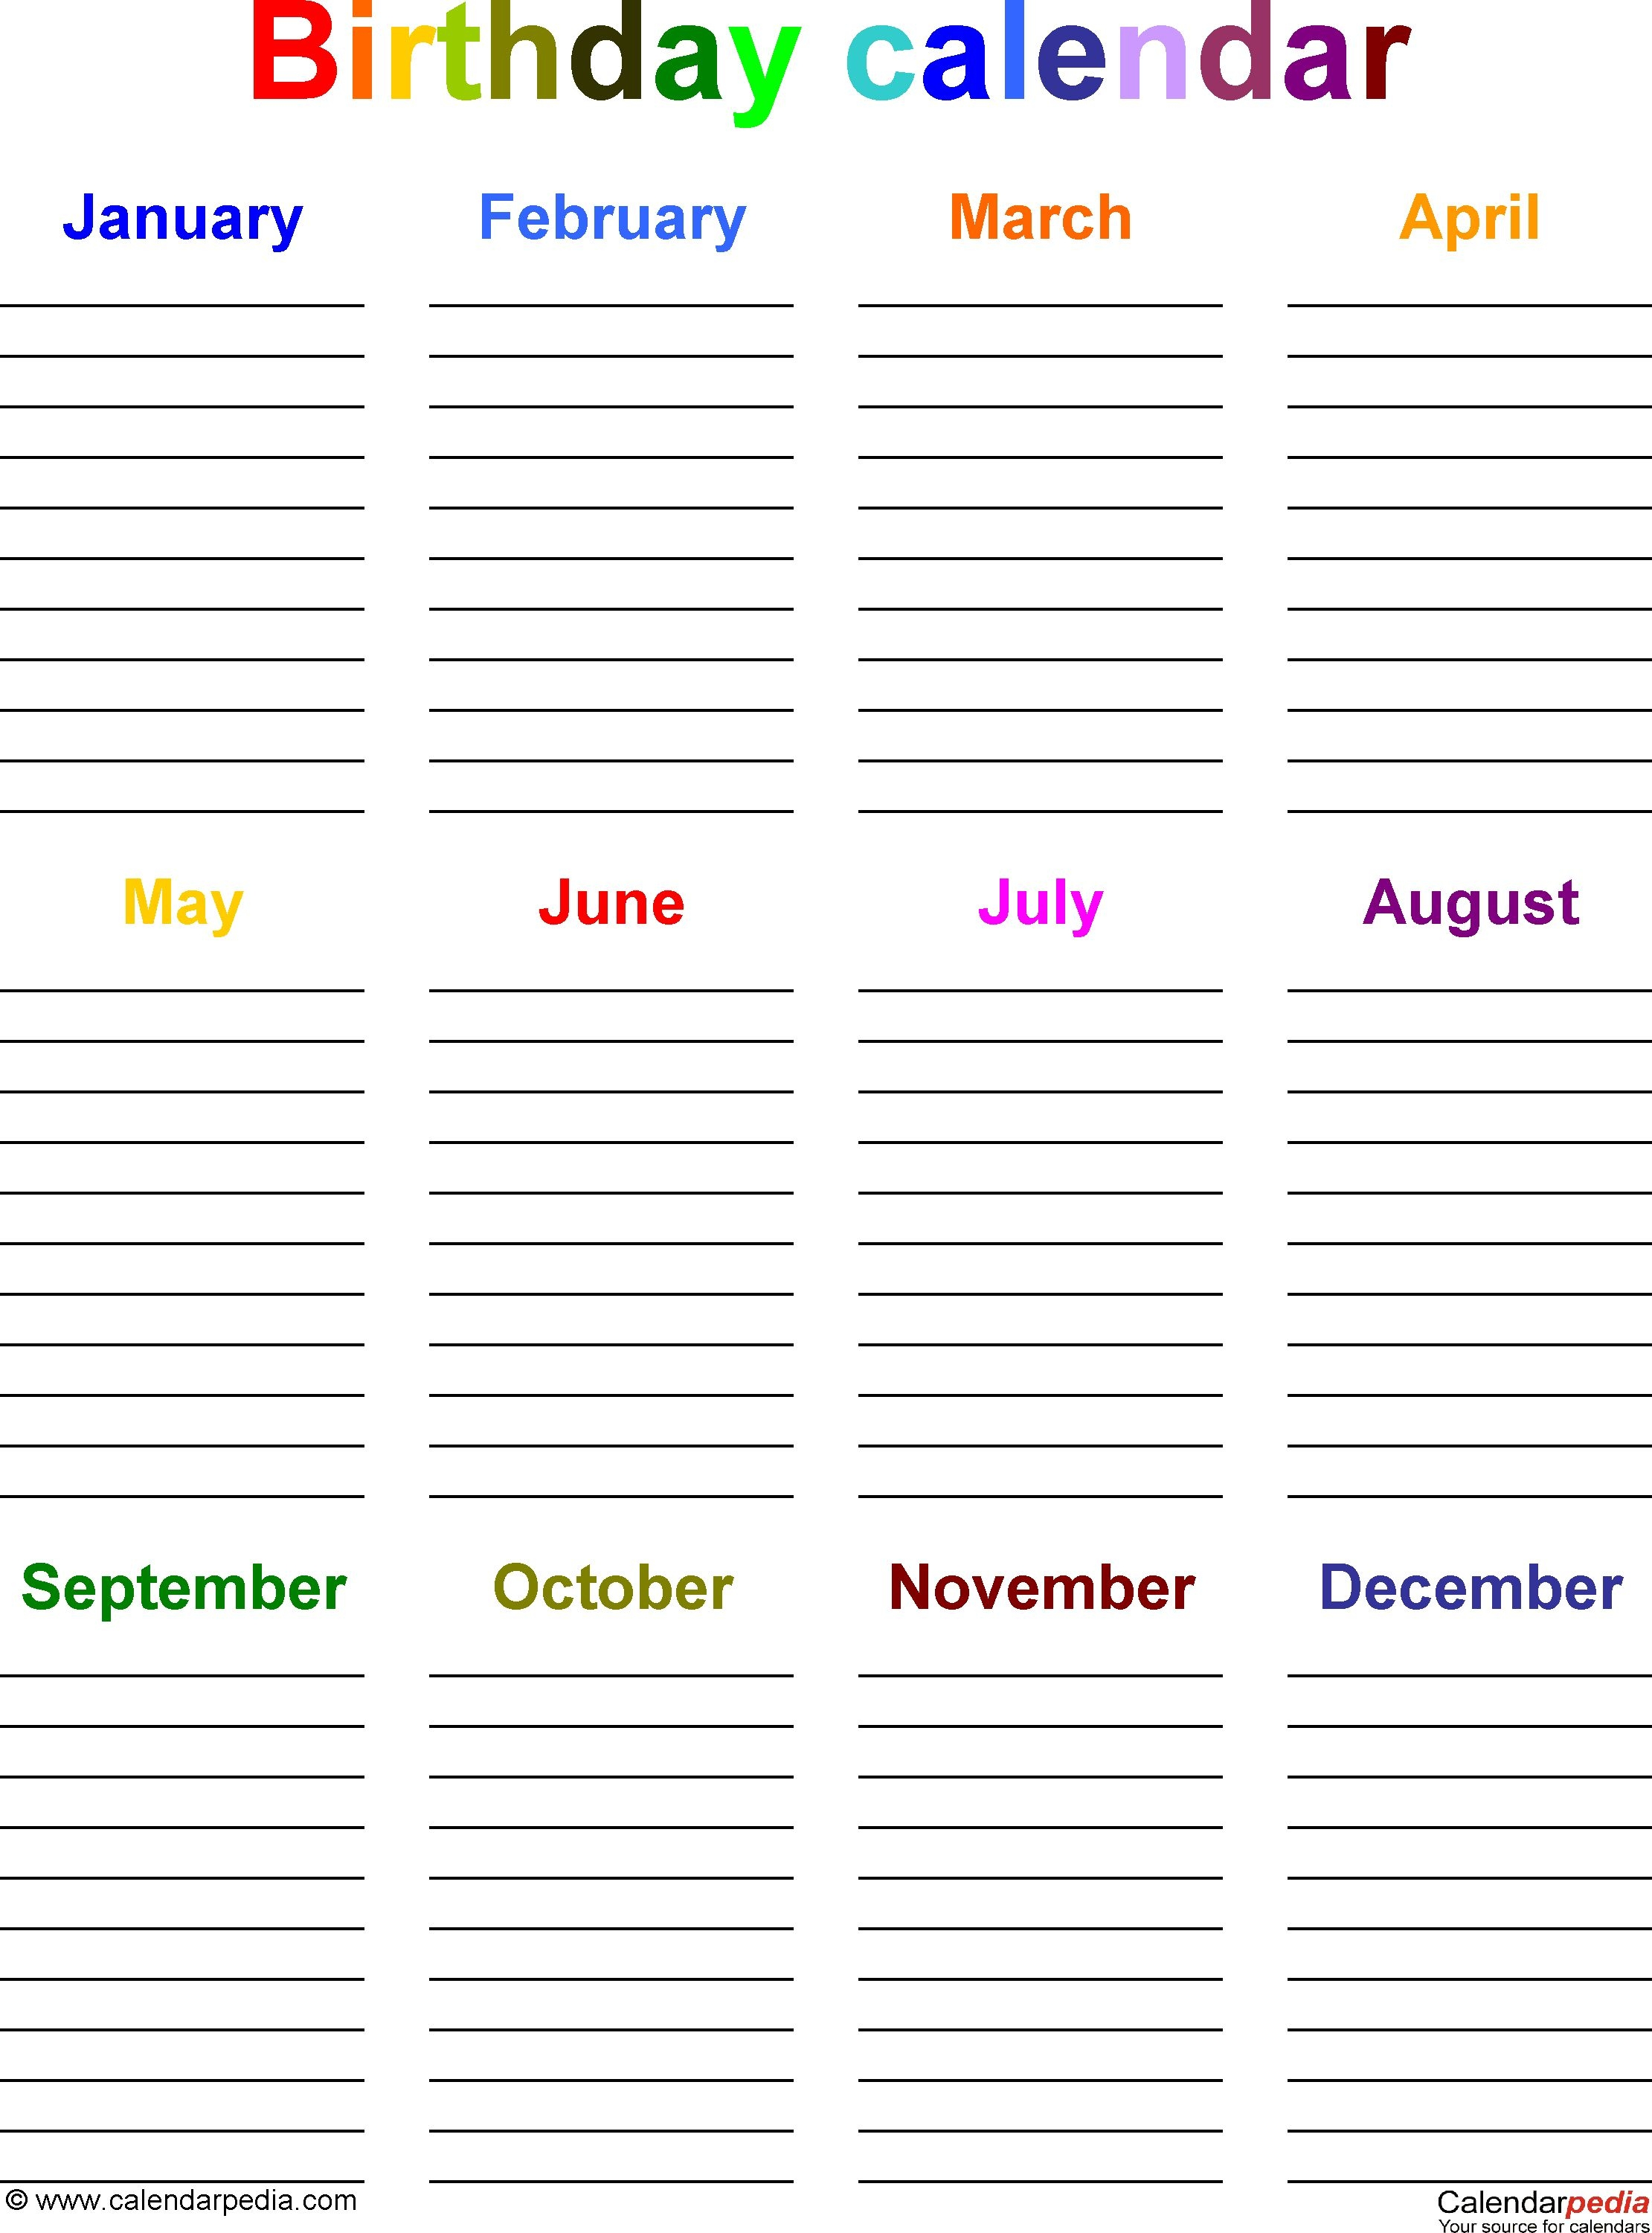 Yearly Birthday Calendar | Templates Free Printable